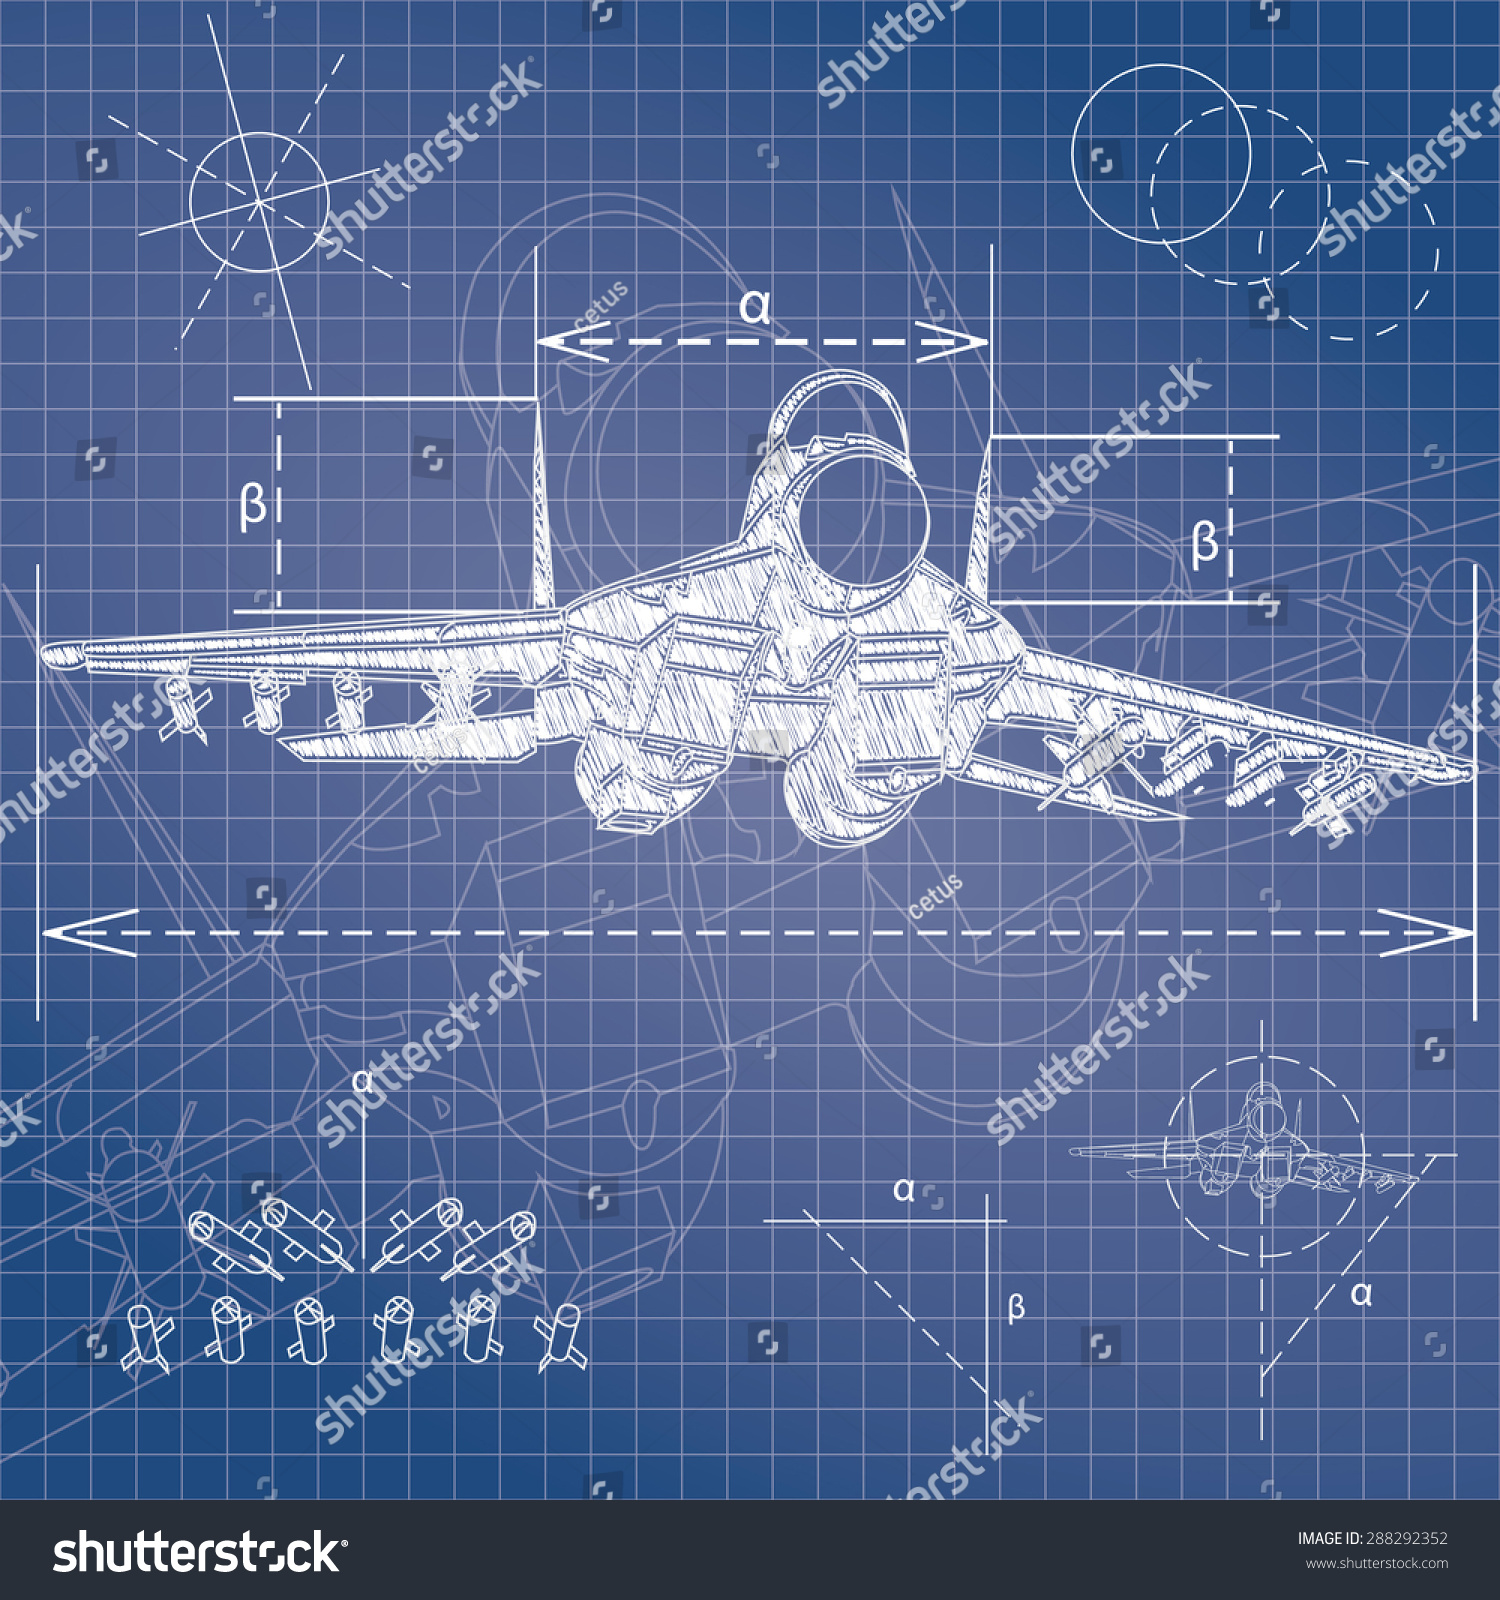 military aircraft blueprint stock vector 288292352 shutterstock